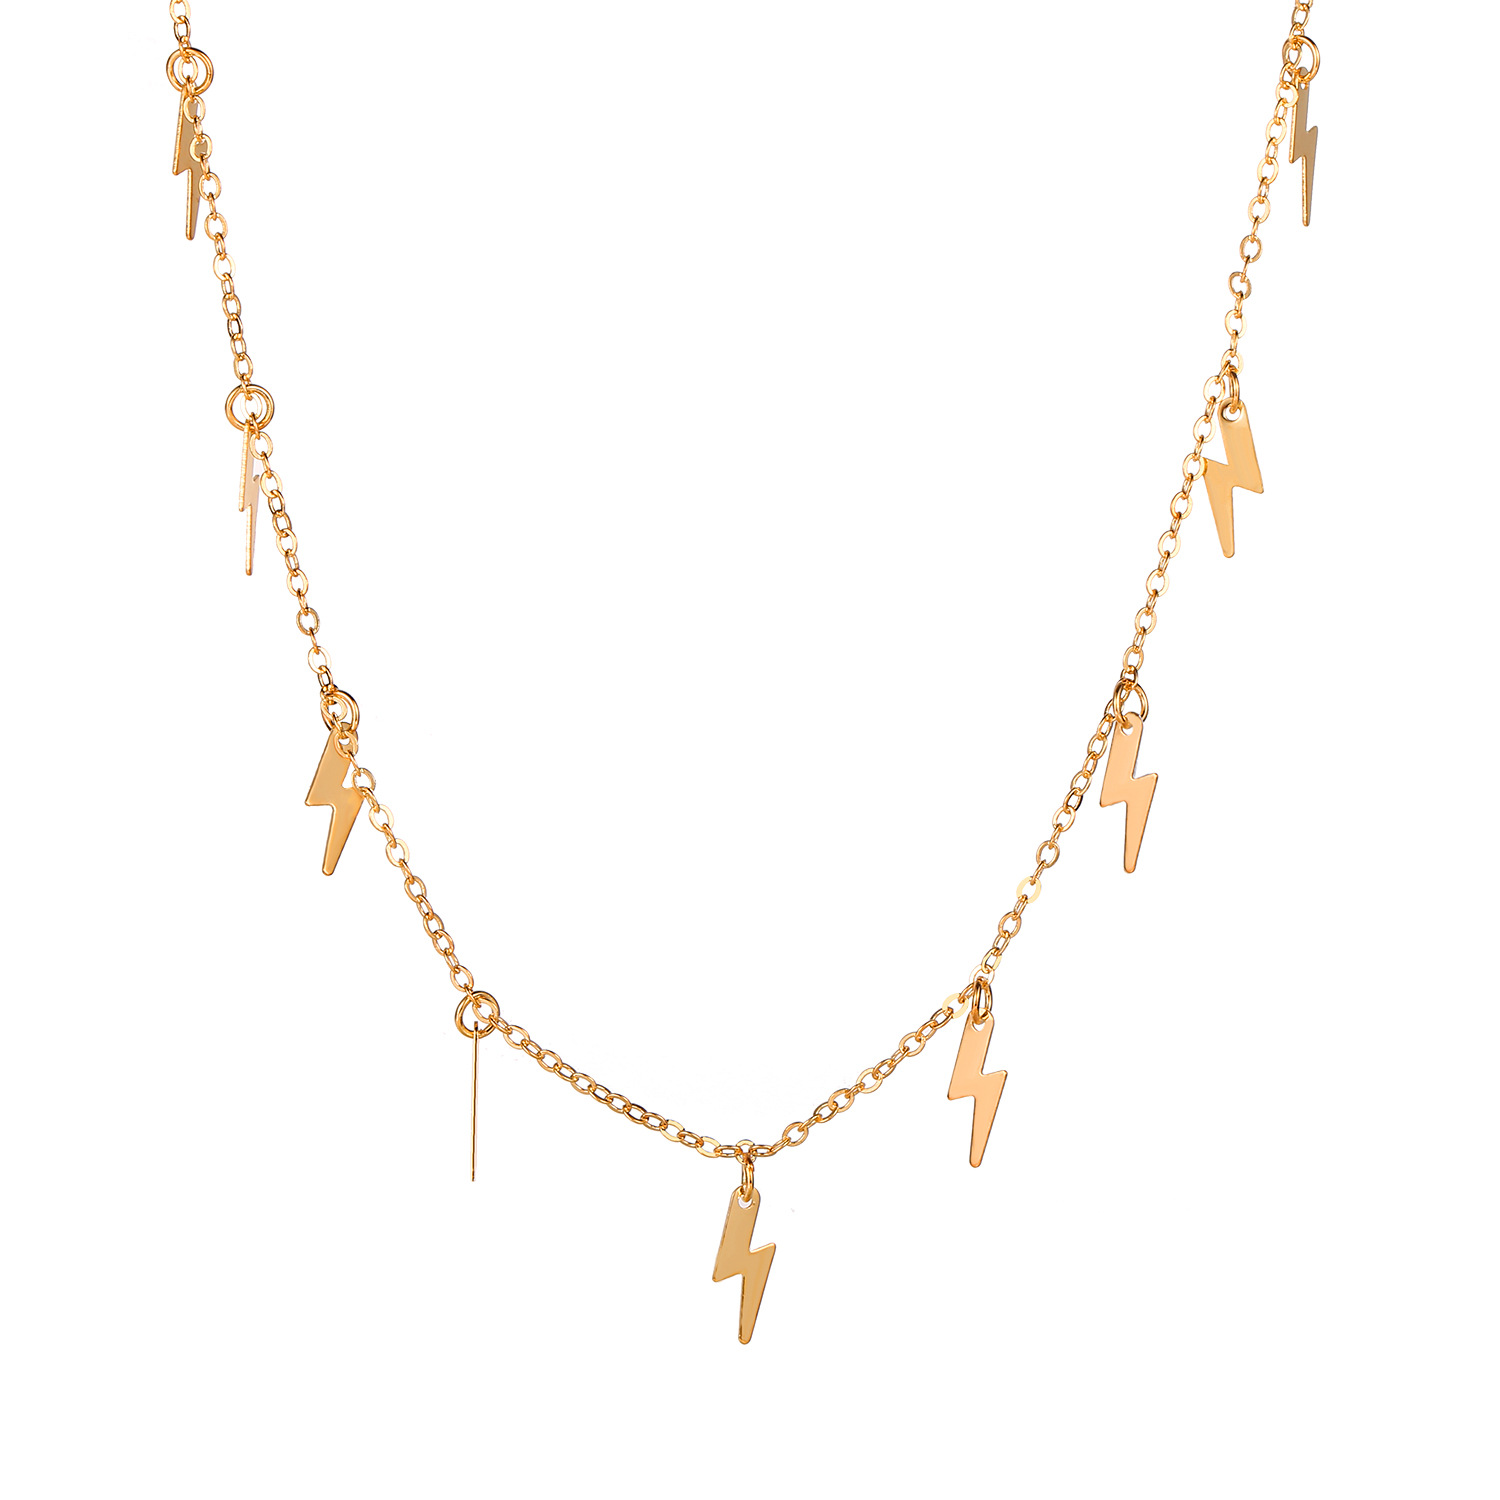 New fashion Lightning Pendant Alloy Retro Metal necklace Clavicle Chain nihaojewelry NHPJ238855